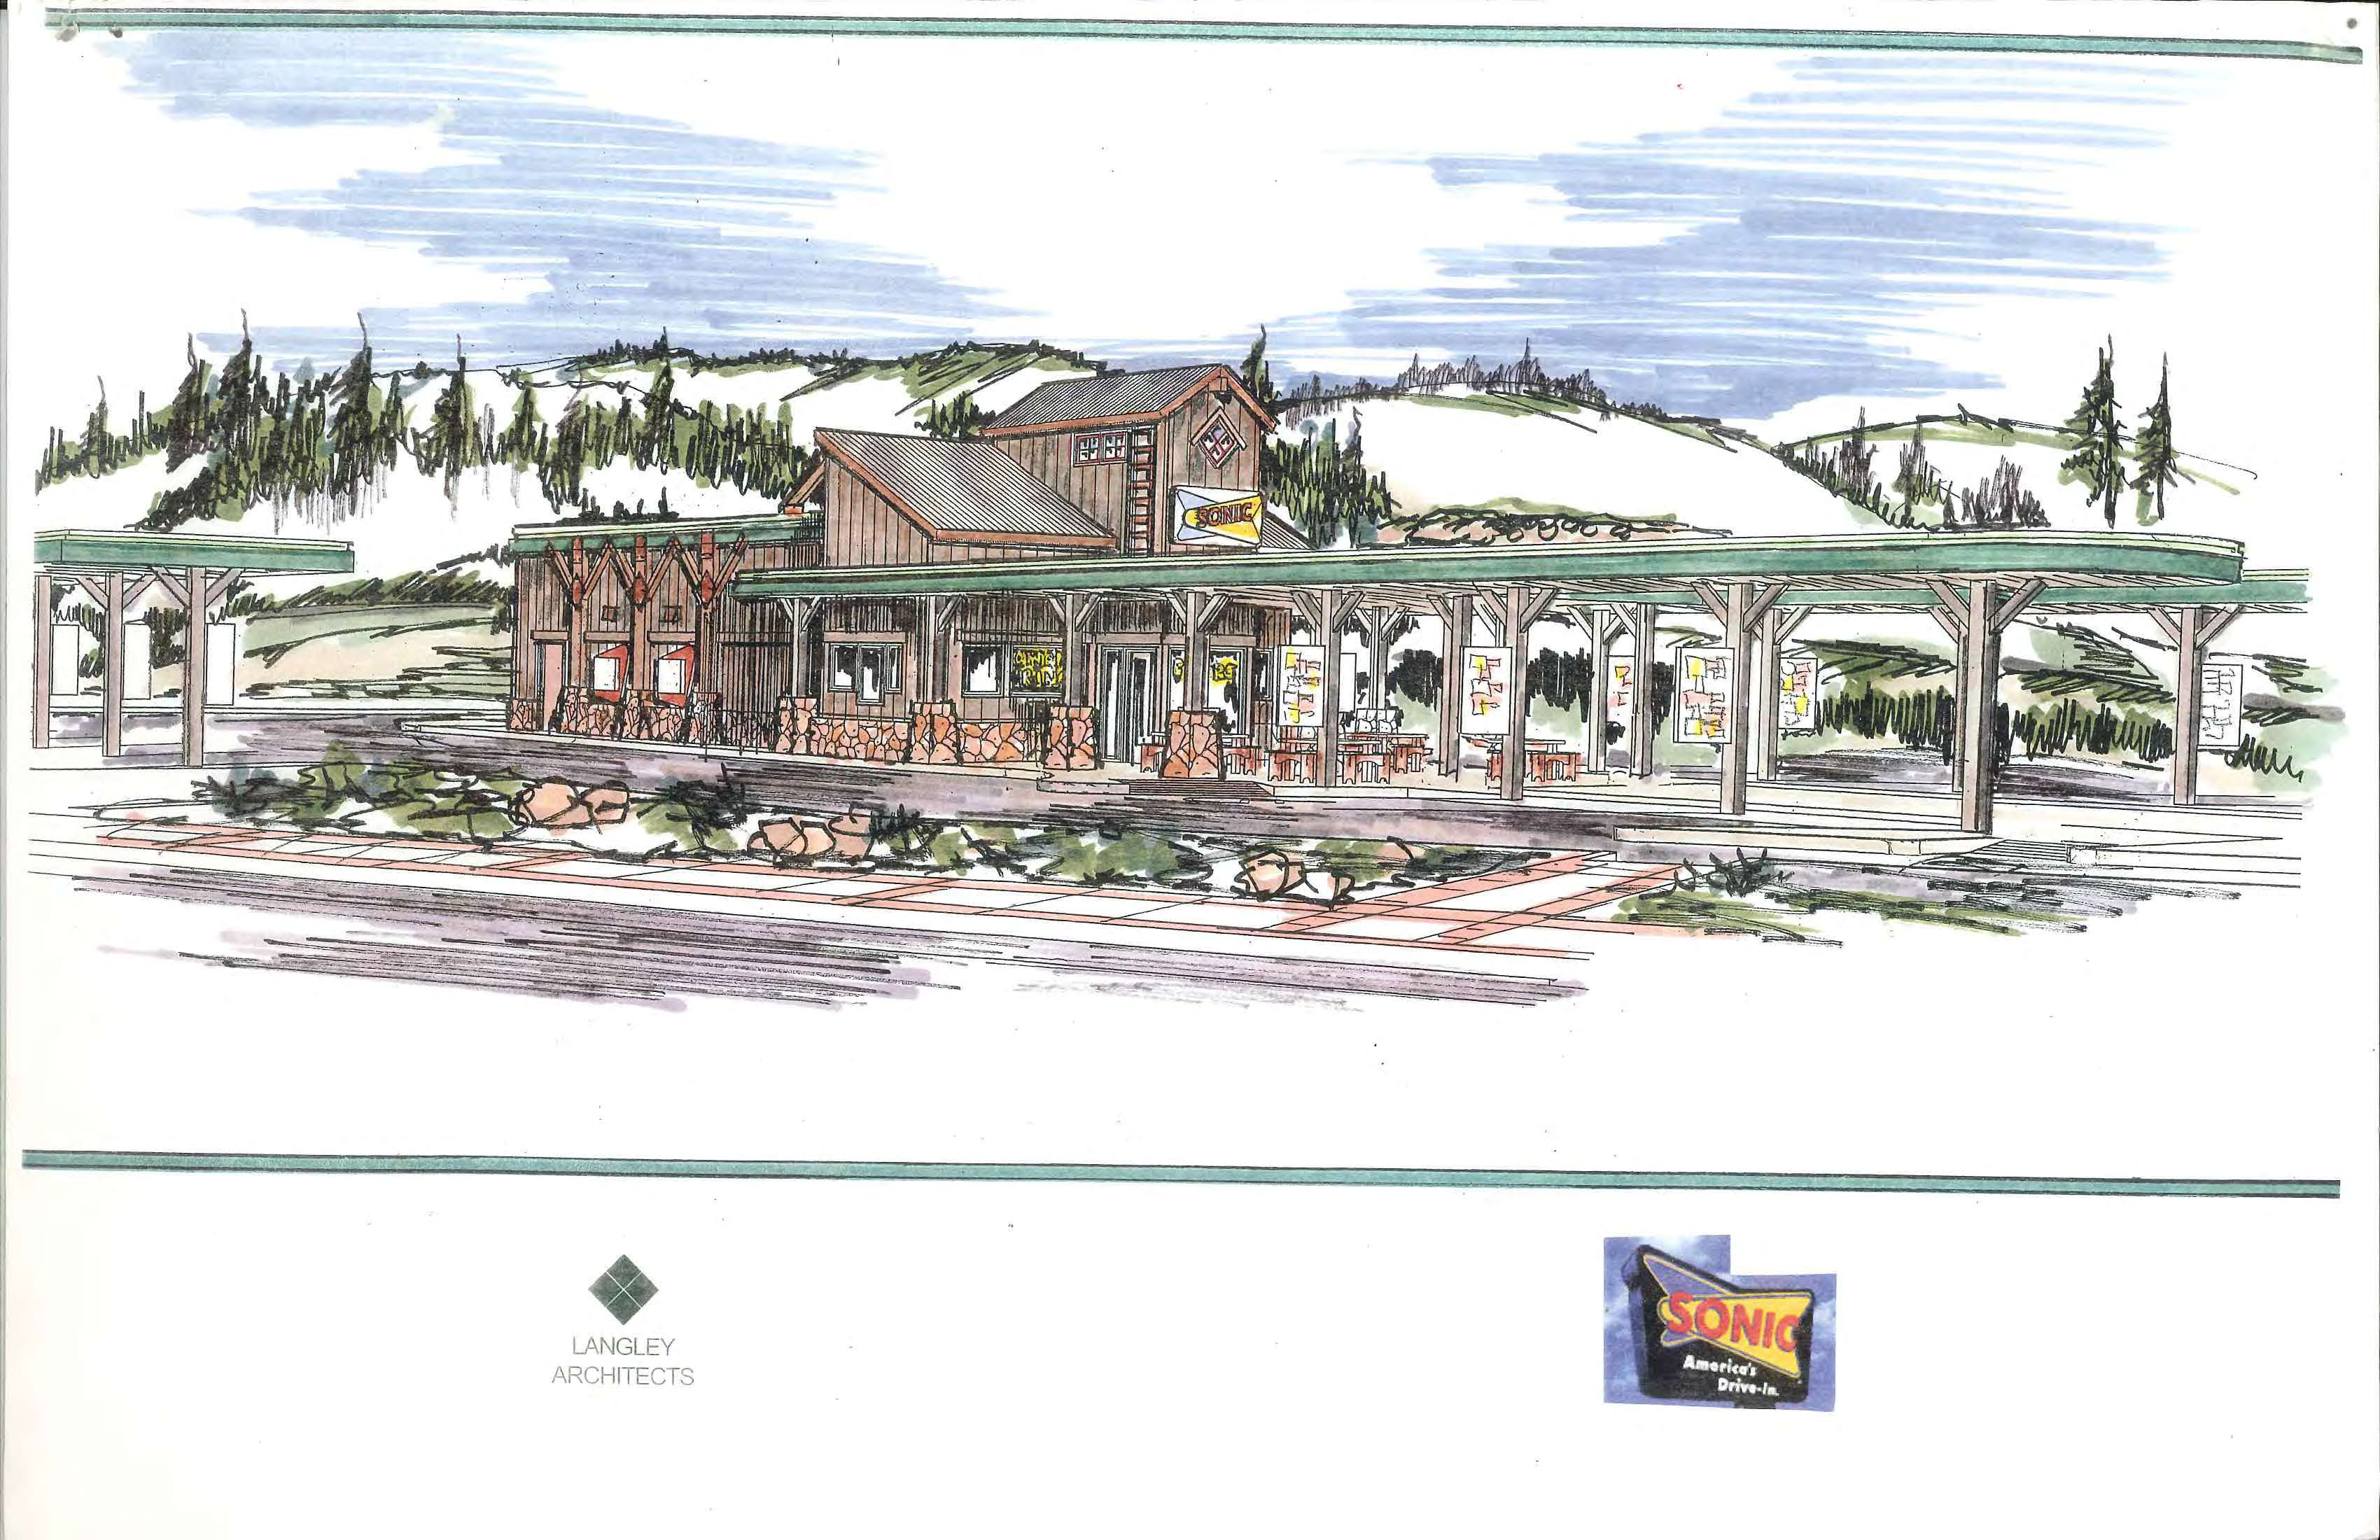 Home 2 - David Langley Woodland House Sketch Design on urban house design, houston house design, prairie house design, lancaster house design, napa house design, quincy house design, echo house design, jungle house design, arctic house design, forest house design, fullerton house design, manchester house design, richmond house design, madison house design, ocean house design, windsor house design, seaside house design, highland house design, catwalk house design, lake house design,